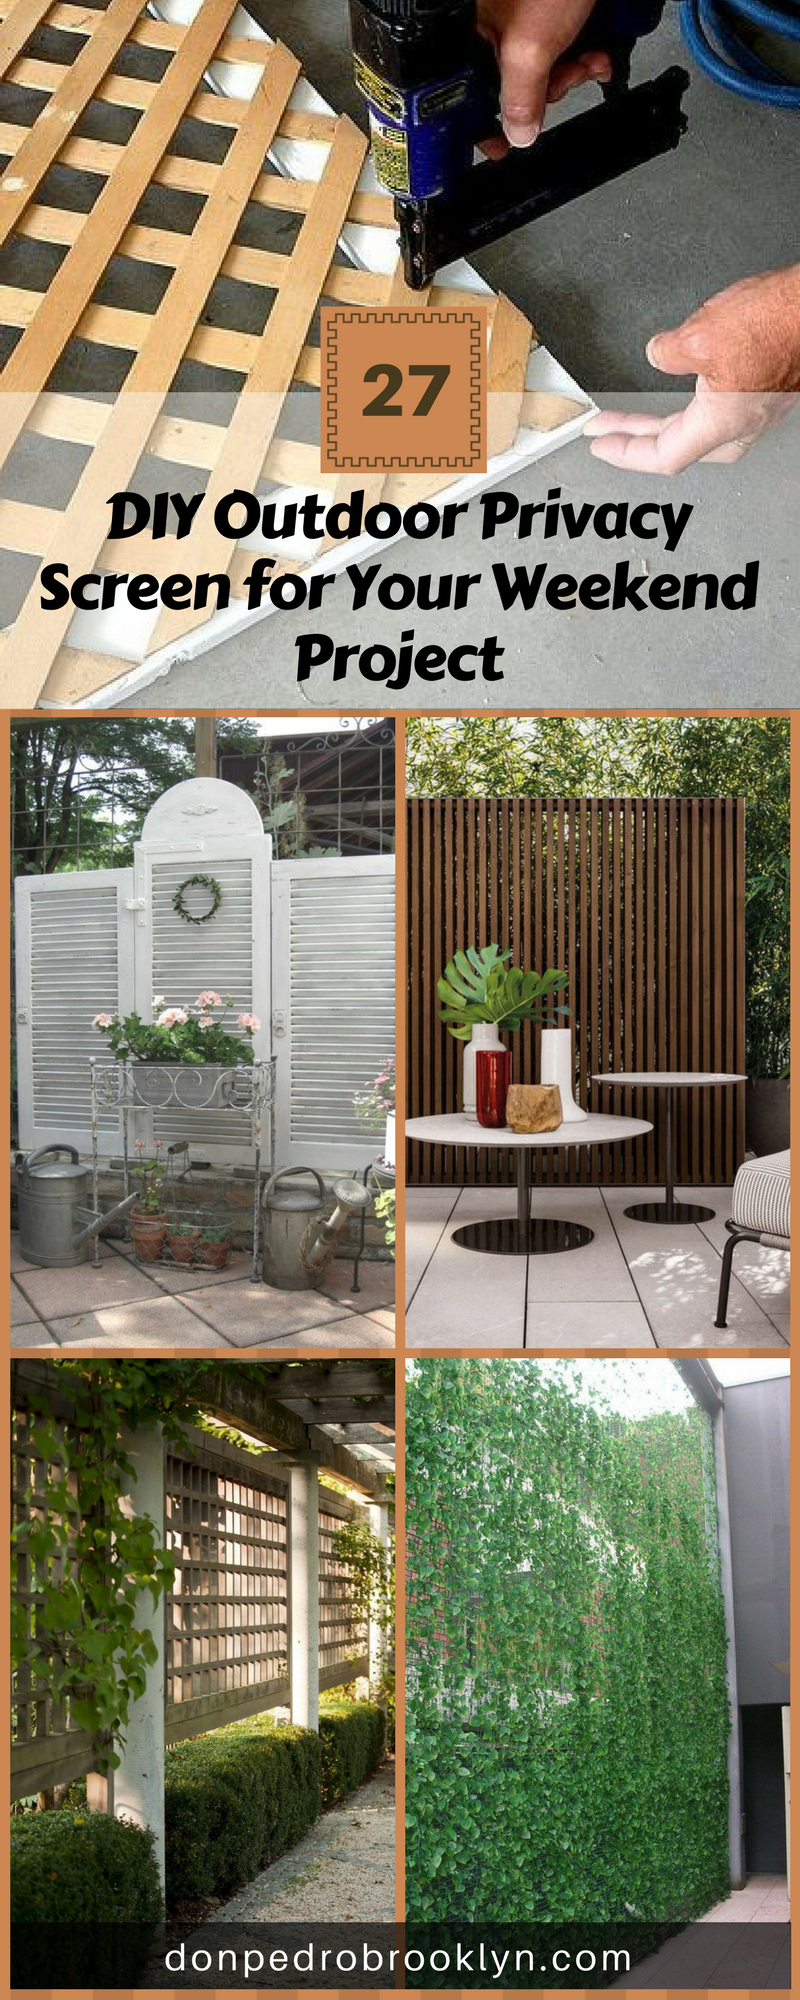 28 Awesome Diy Outdoor Privacy Screen Ideas With Picture Outdoor